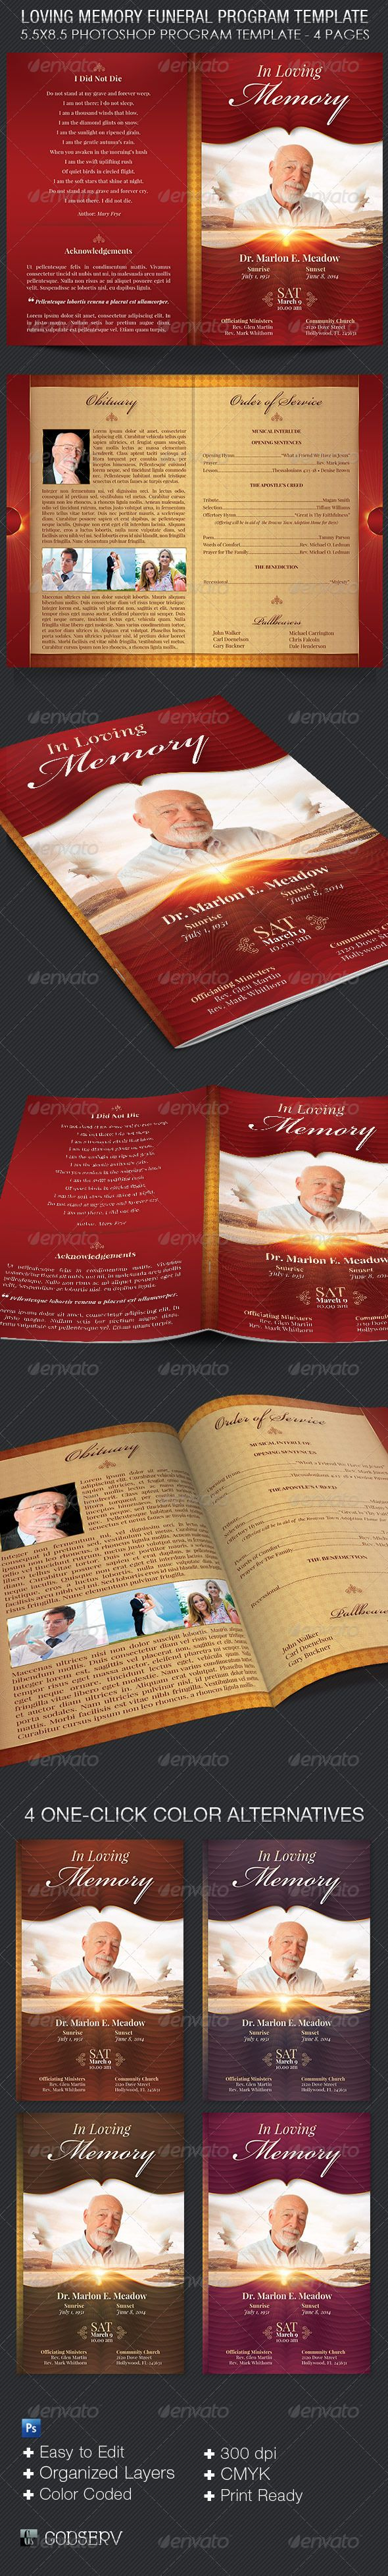 """Loving Memory Funeral Program Template - 8.00 The Loving Memory Funeral Program Template is for a modern commemorative or home going service. It's gold decals and text style laid over a decorative red and yellow background will honor and dignify your loved ones. This template is easy to edit which will speed up your production schedule. All you need to do is, """"Edit, Save, Print"""""""